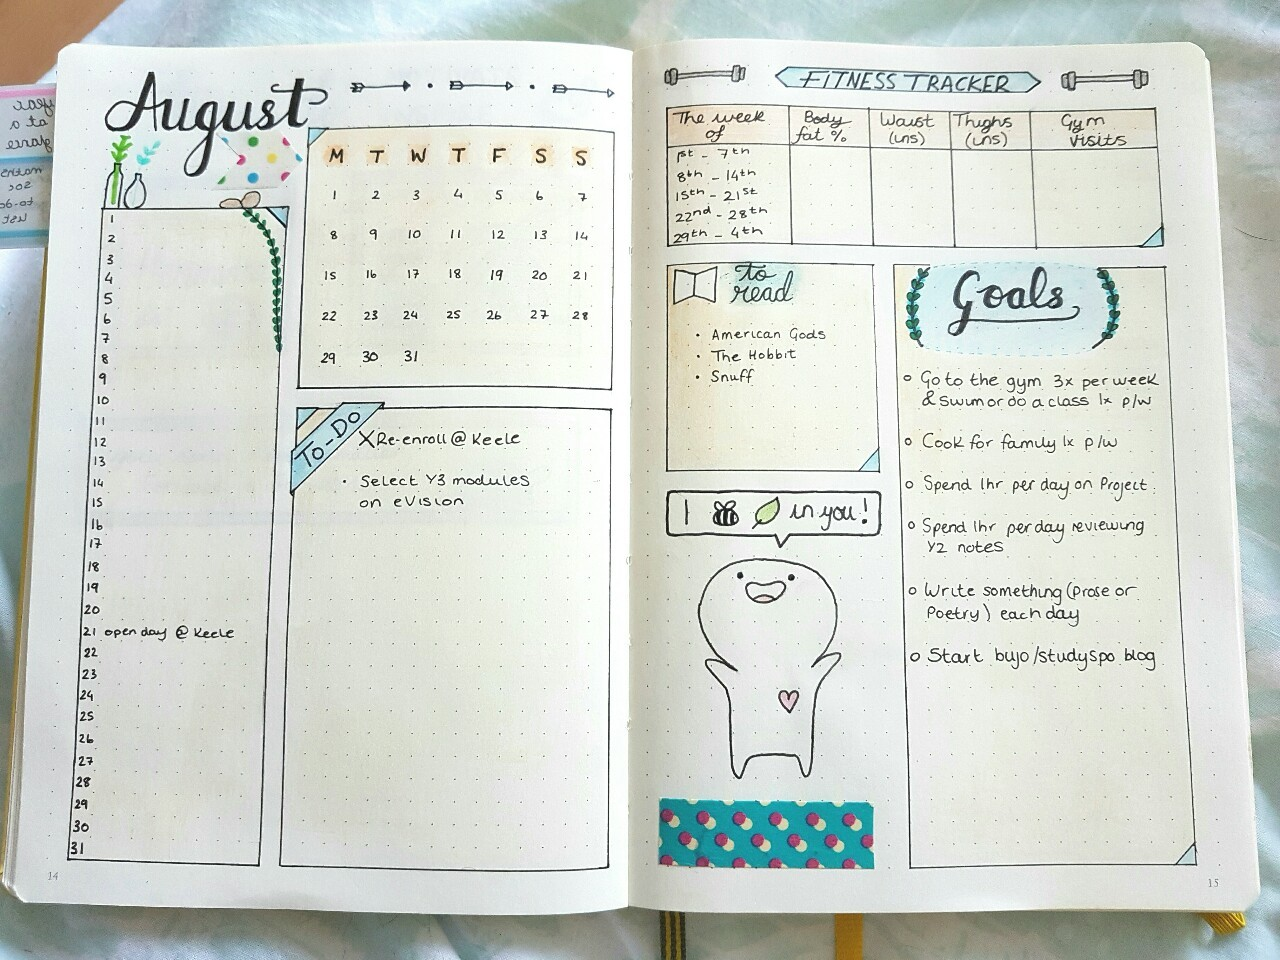 Bullet Journal, Bullet Journal Ideas, Bullet Journal Monthly Ideas, Bullet Journal Inspiration, Bullet Journal Pages Ideas, How To Start A Bullet Journal